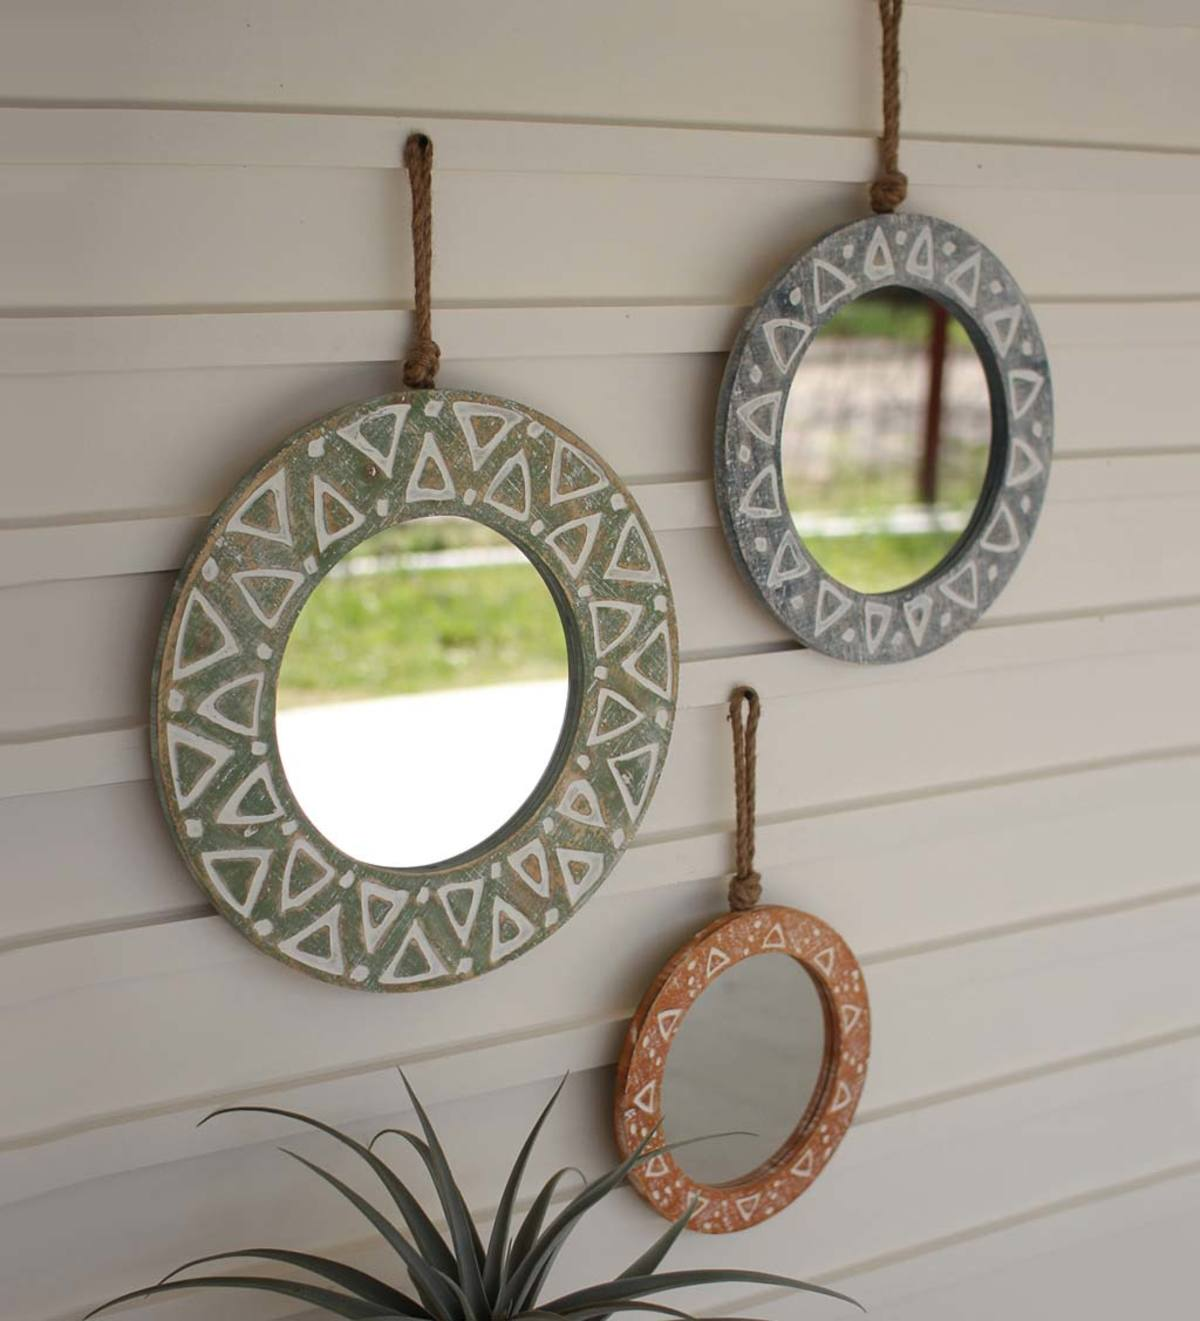 Round Wooden Mirrors With Rope Hangers, Set of 3